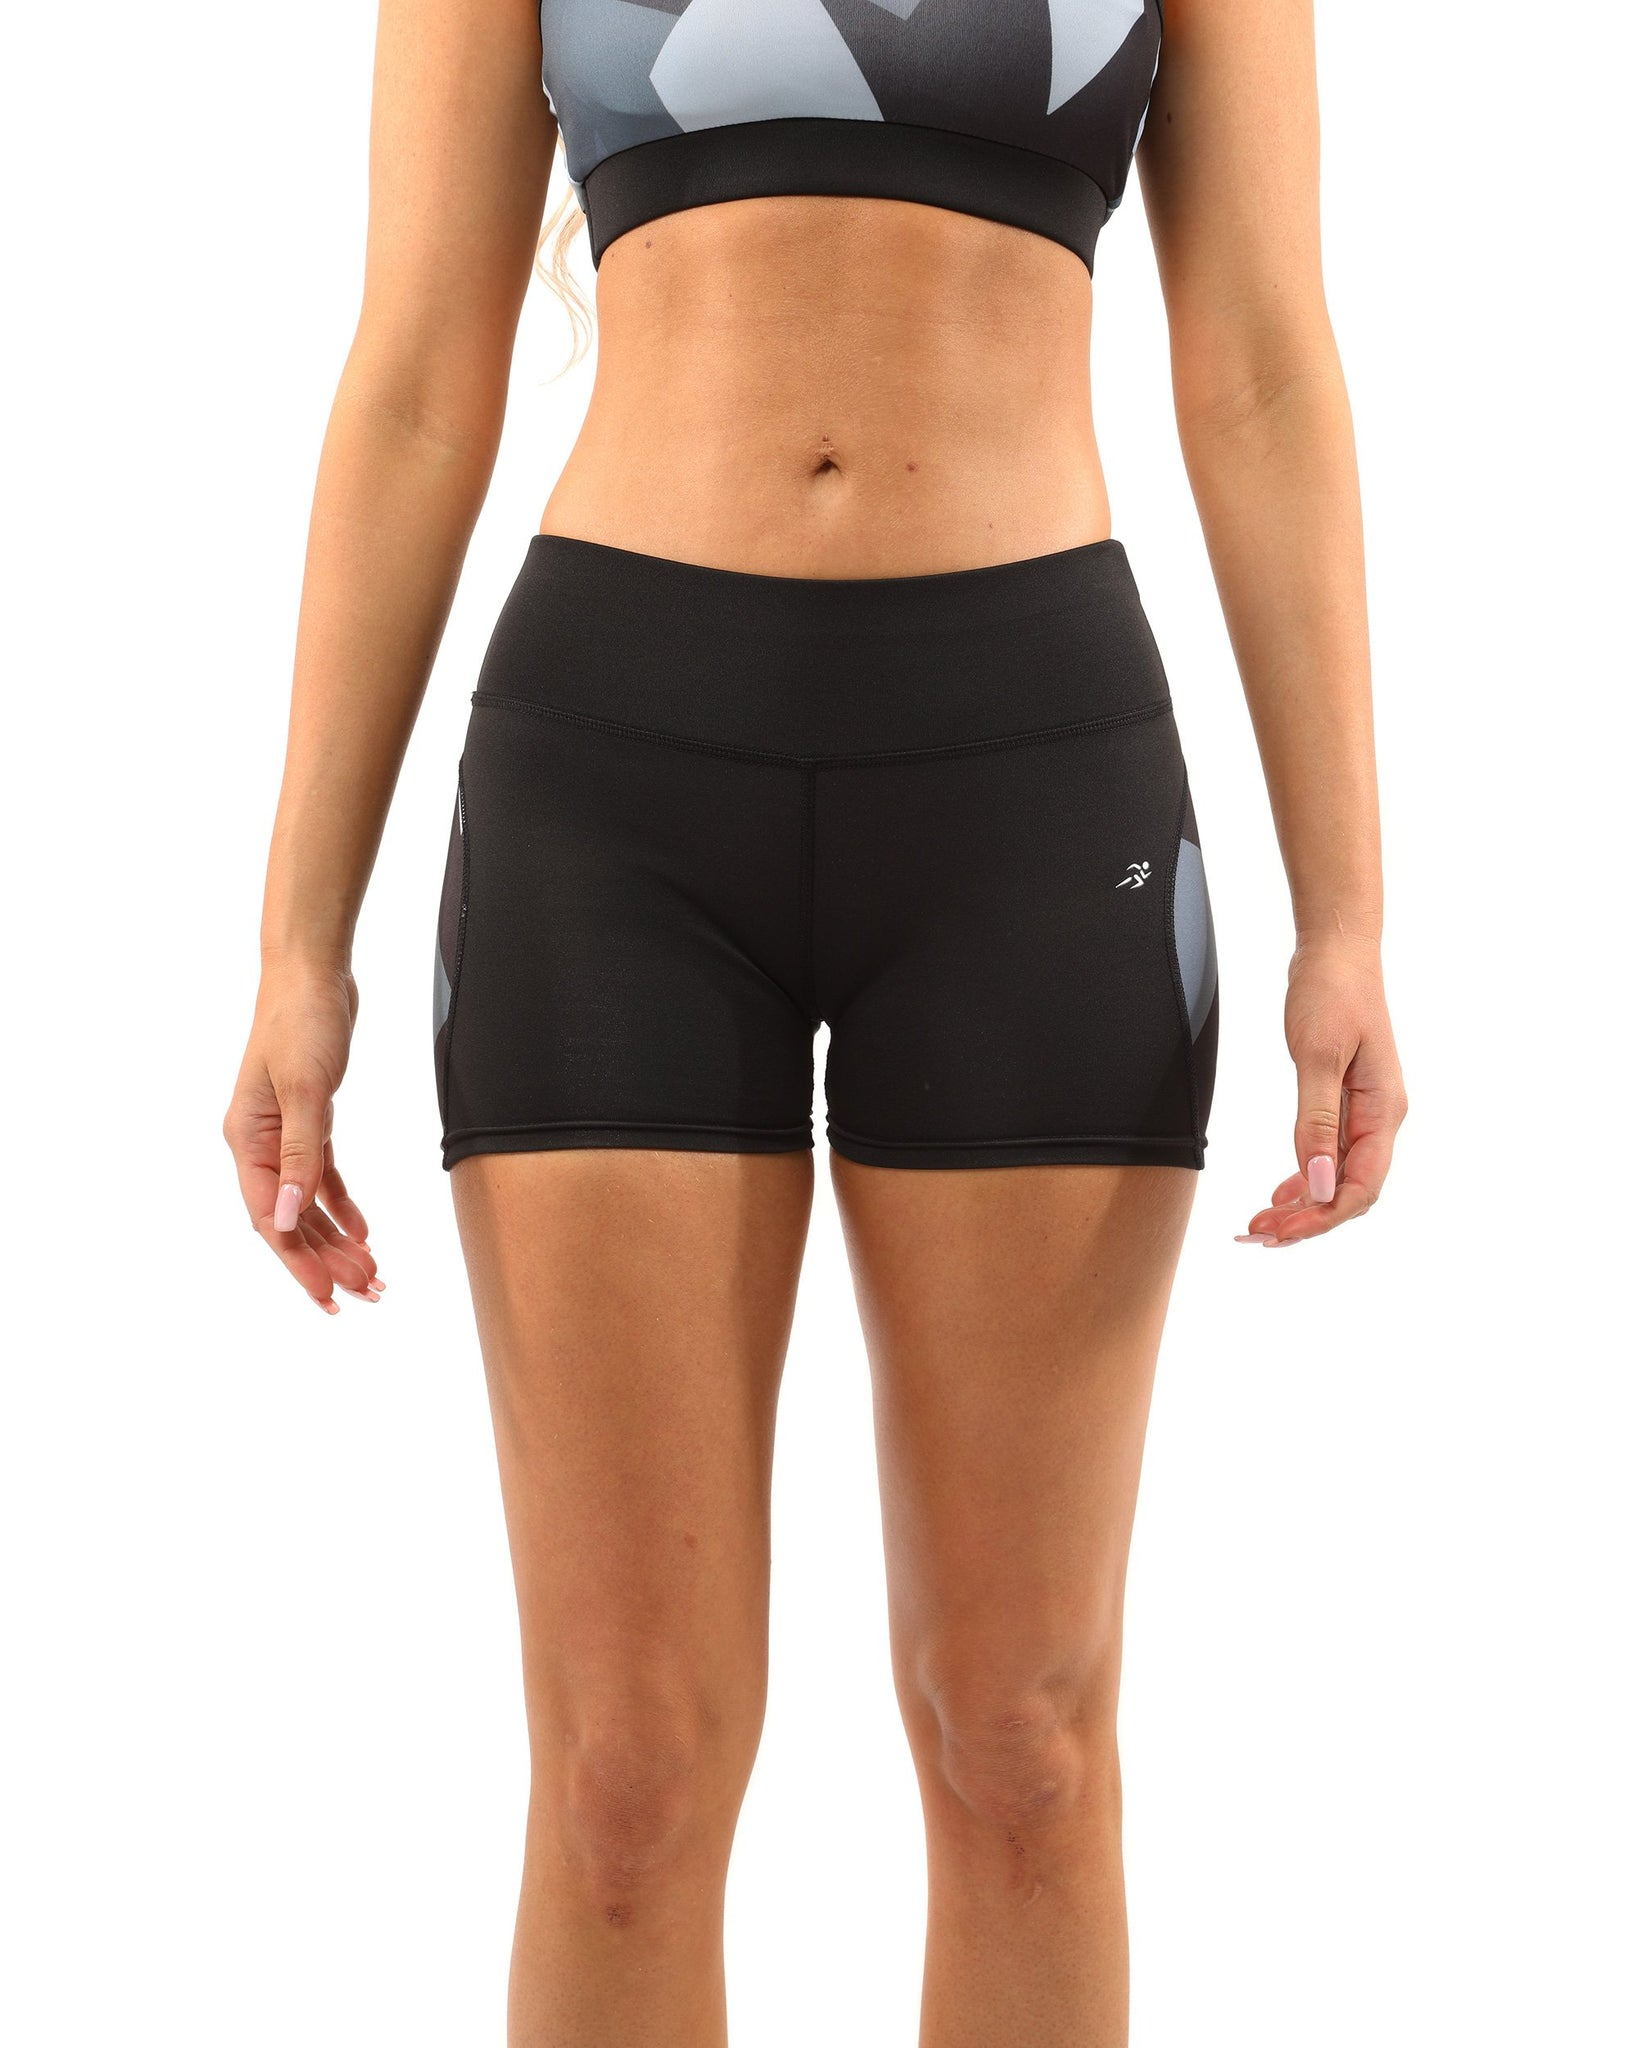 RSP Fashion - Bondi Shorts - Black/Grey